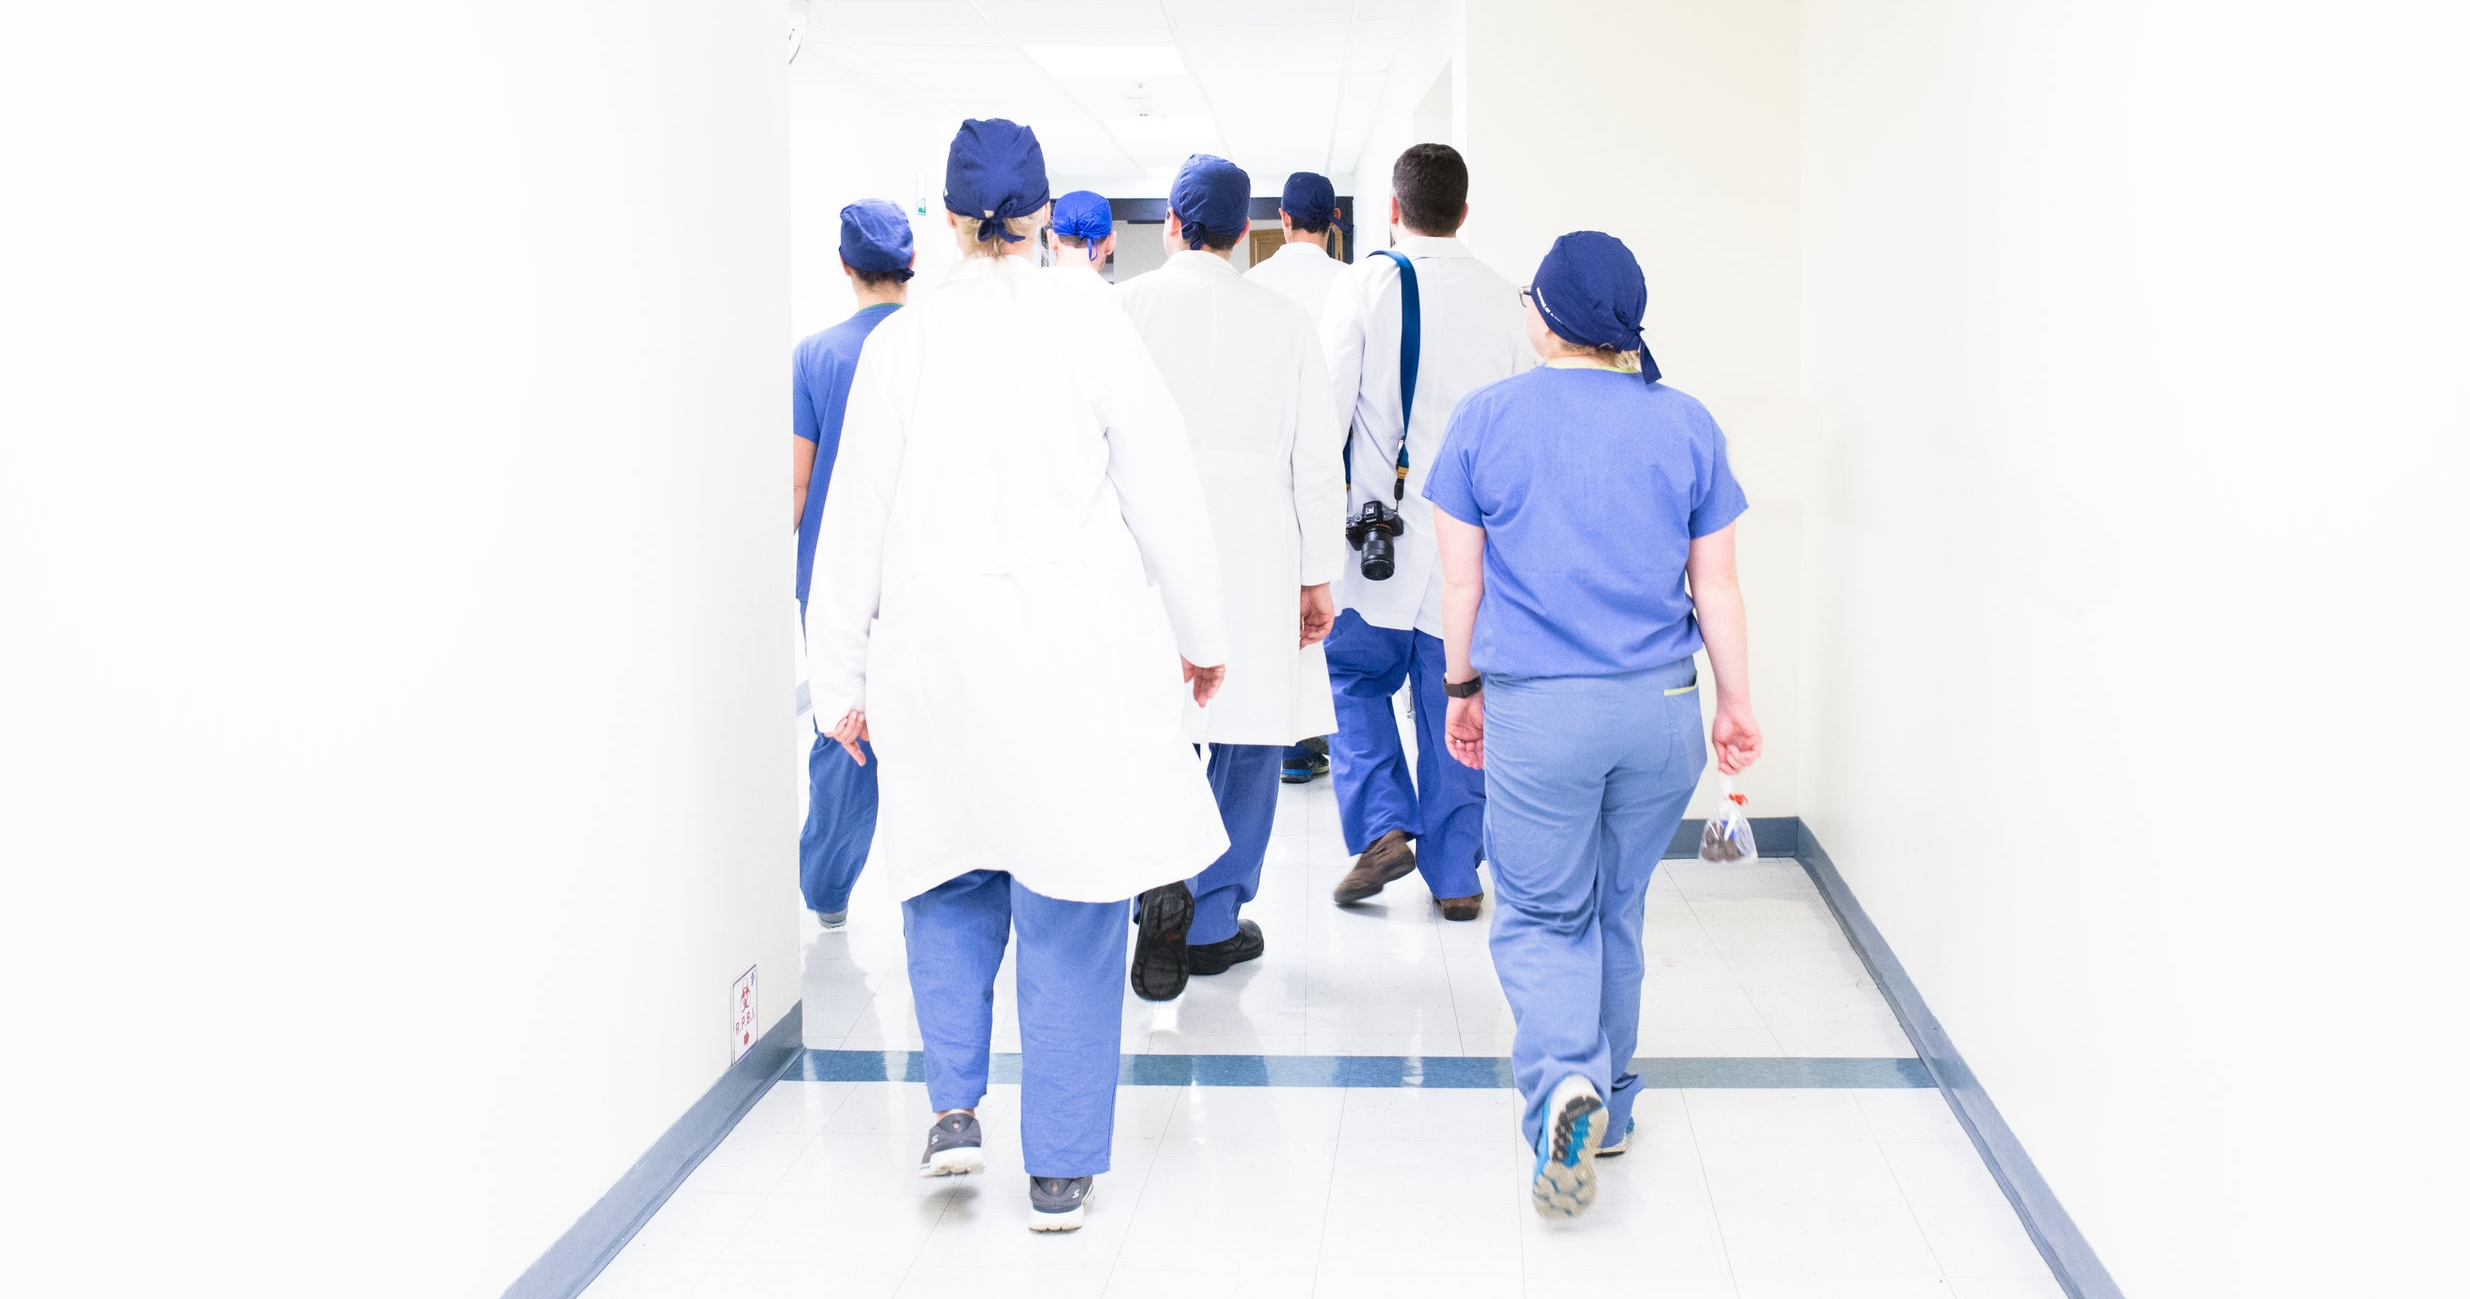 Image: Doctors in purple and white scrubs walking away from the camera down a hospital hallway.